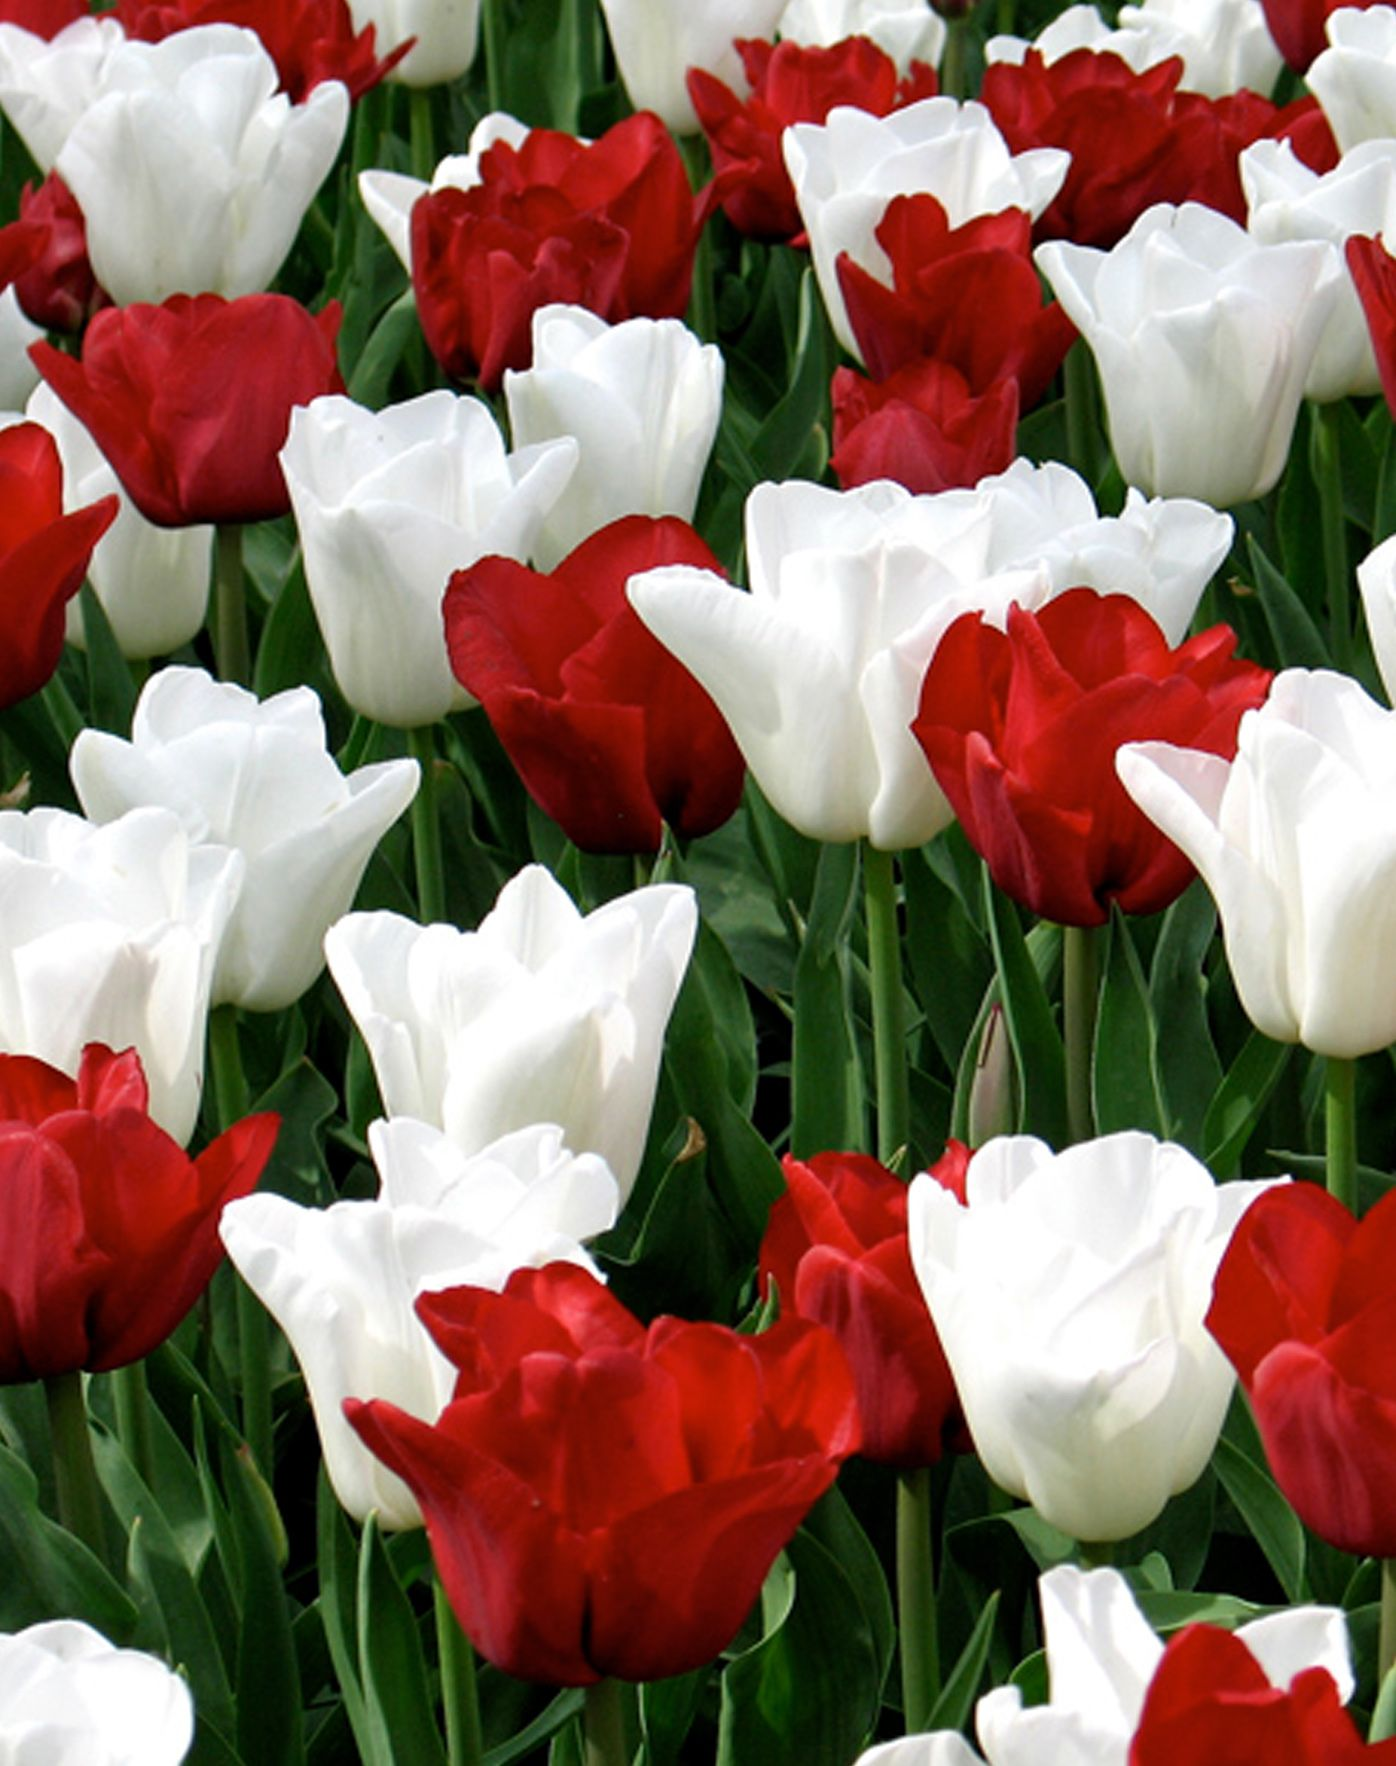 Flower bulbs r us retail bulbs at a bulk price flower power flower bulbs r us retail bulbs at a bulk price mightylinksfo